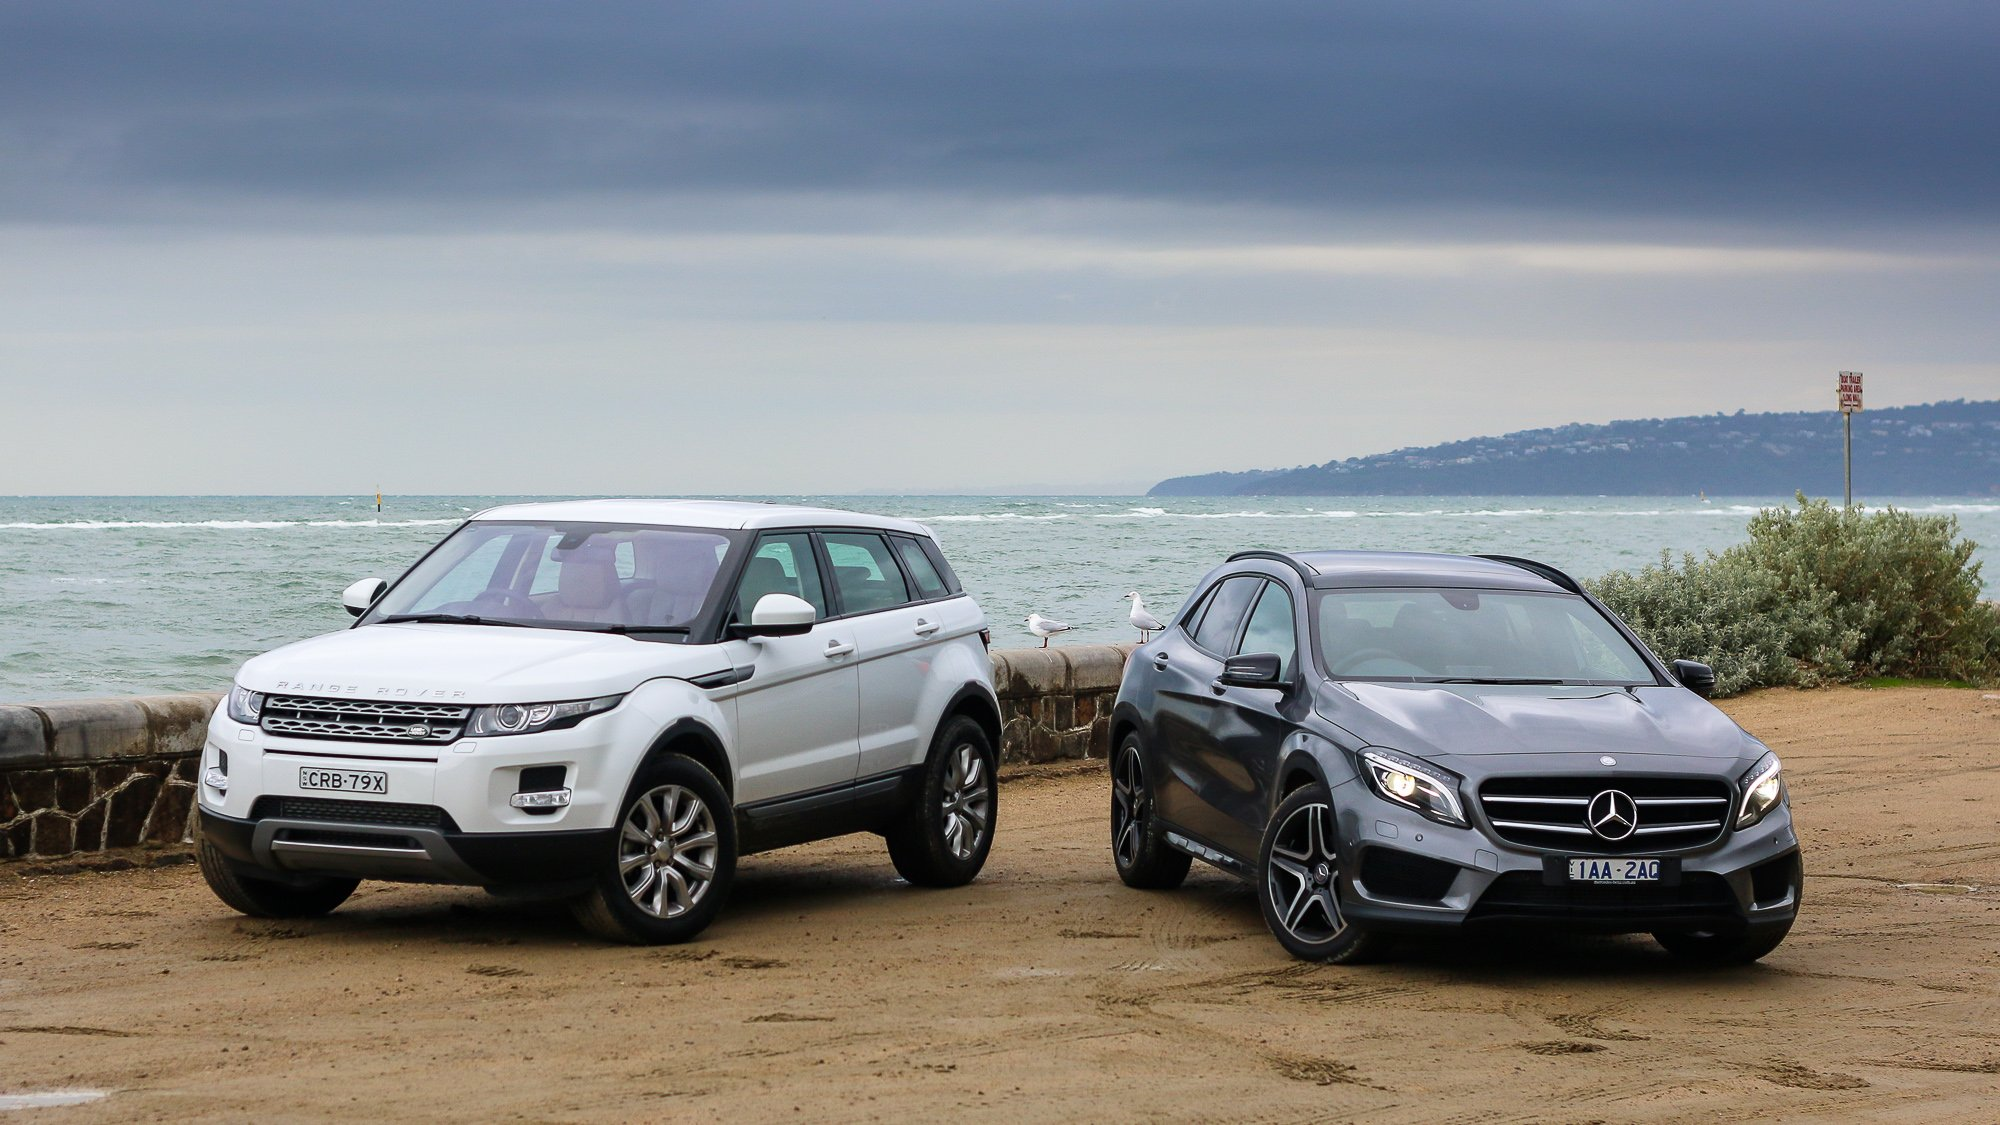 mercedes benz gla class v range rover evoque comparison